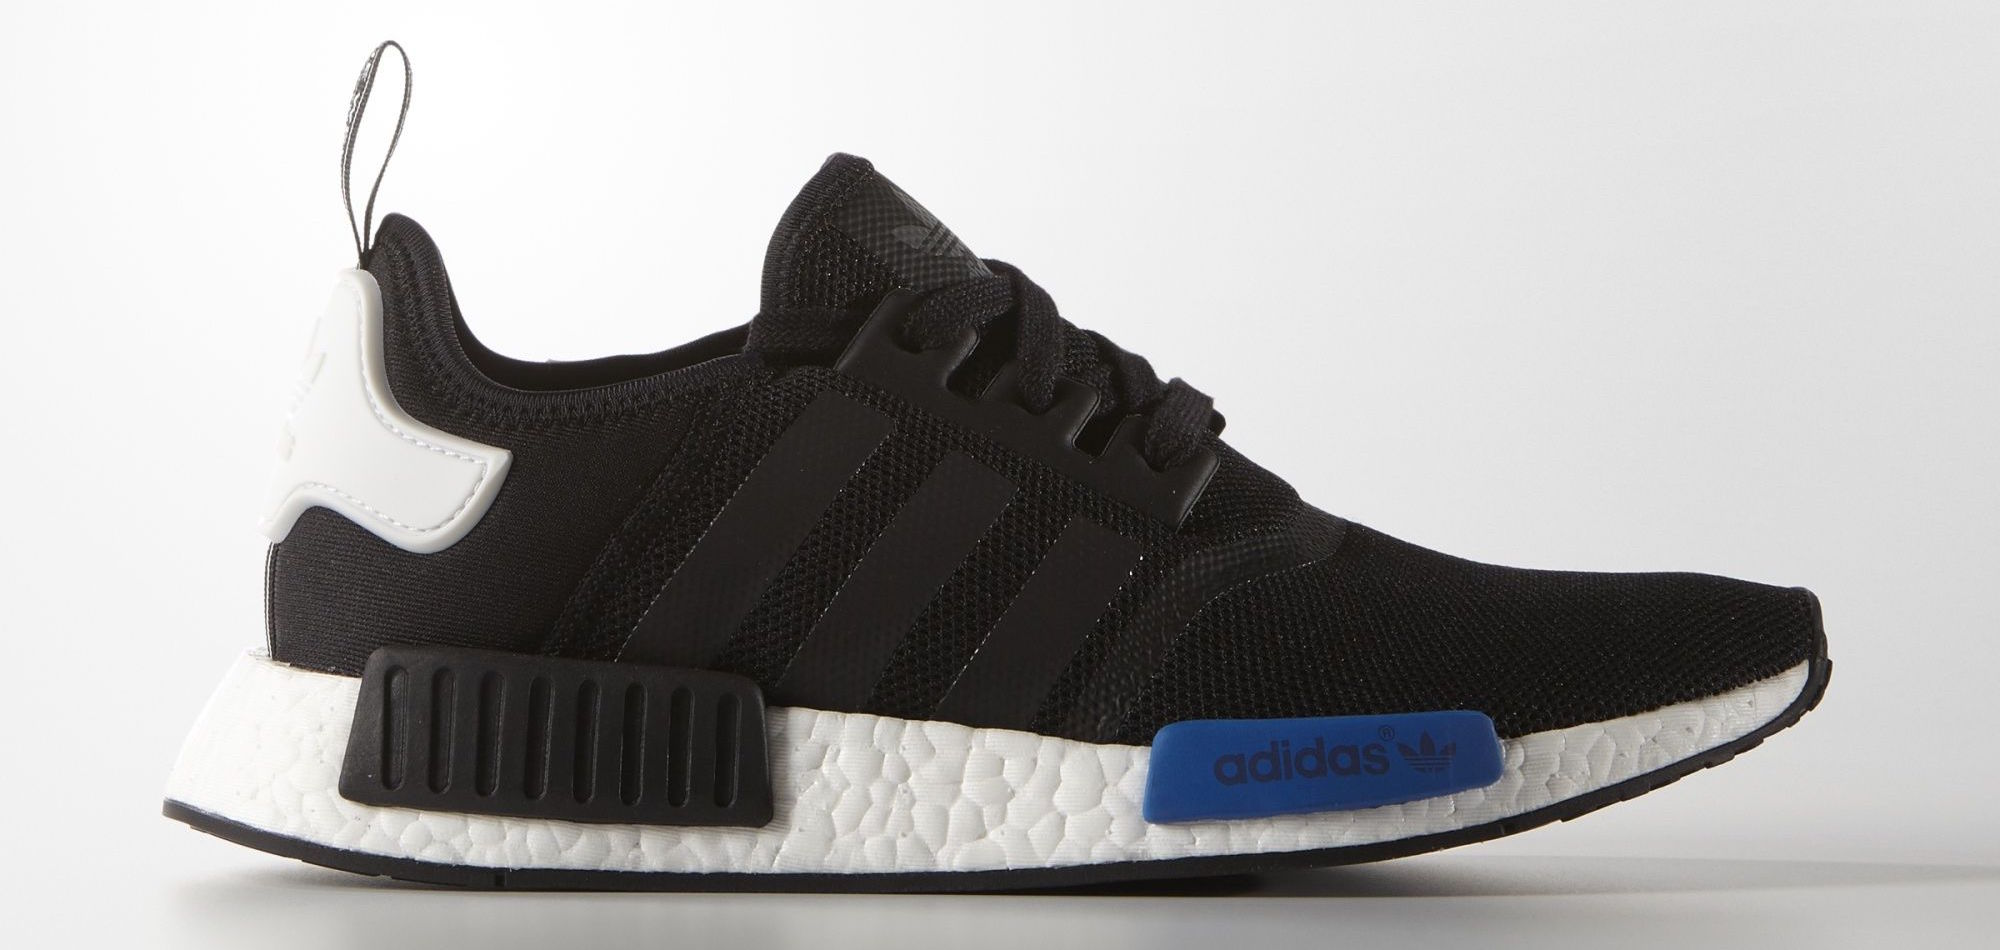 Adidas Nmd R1 Black Blue